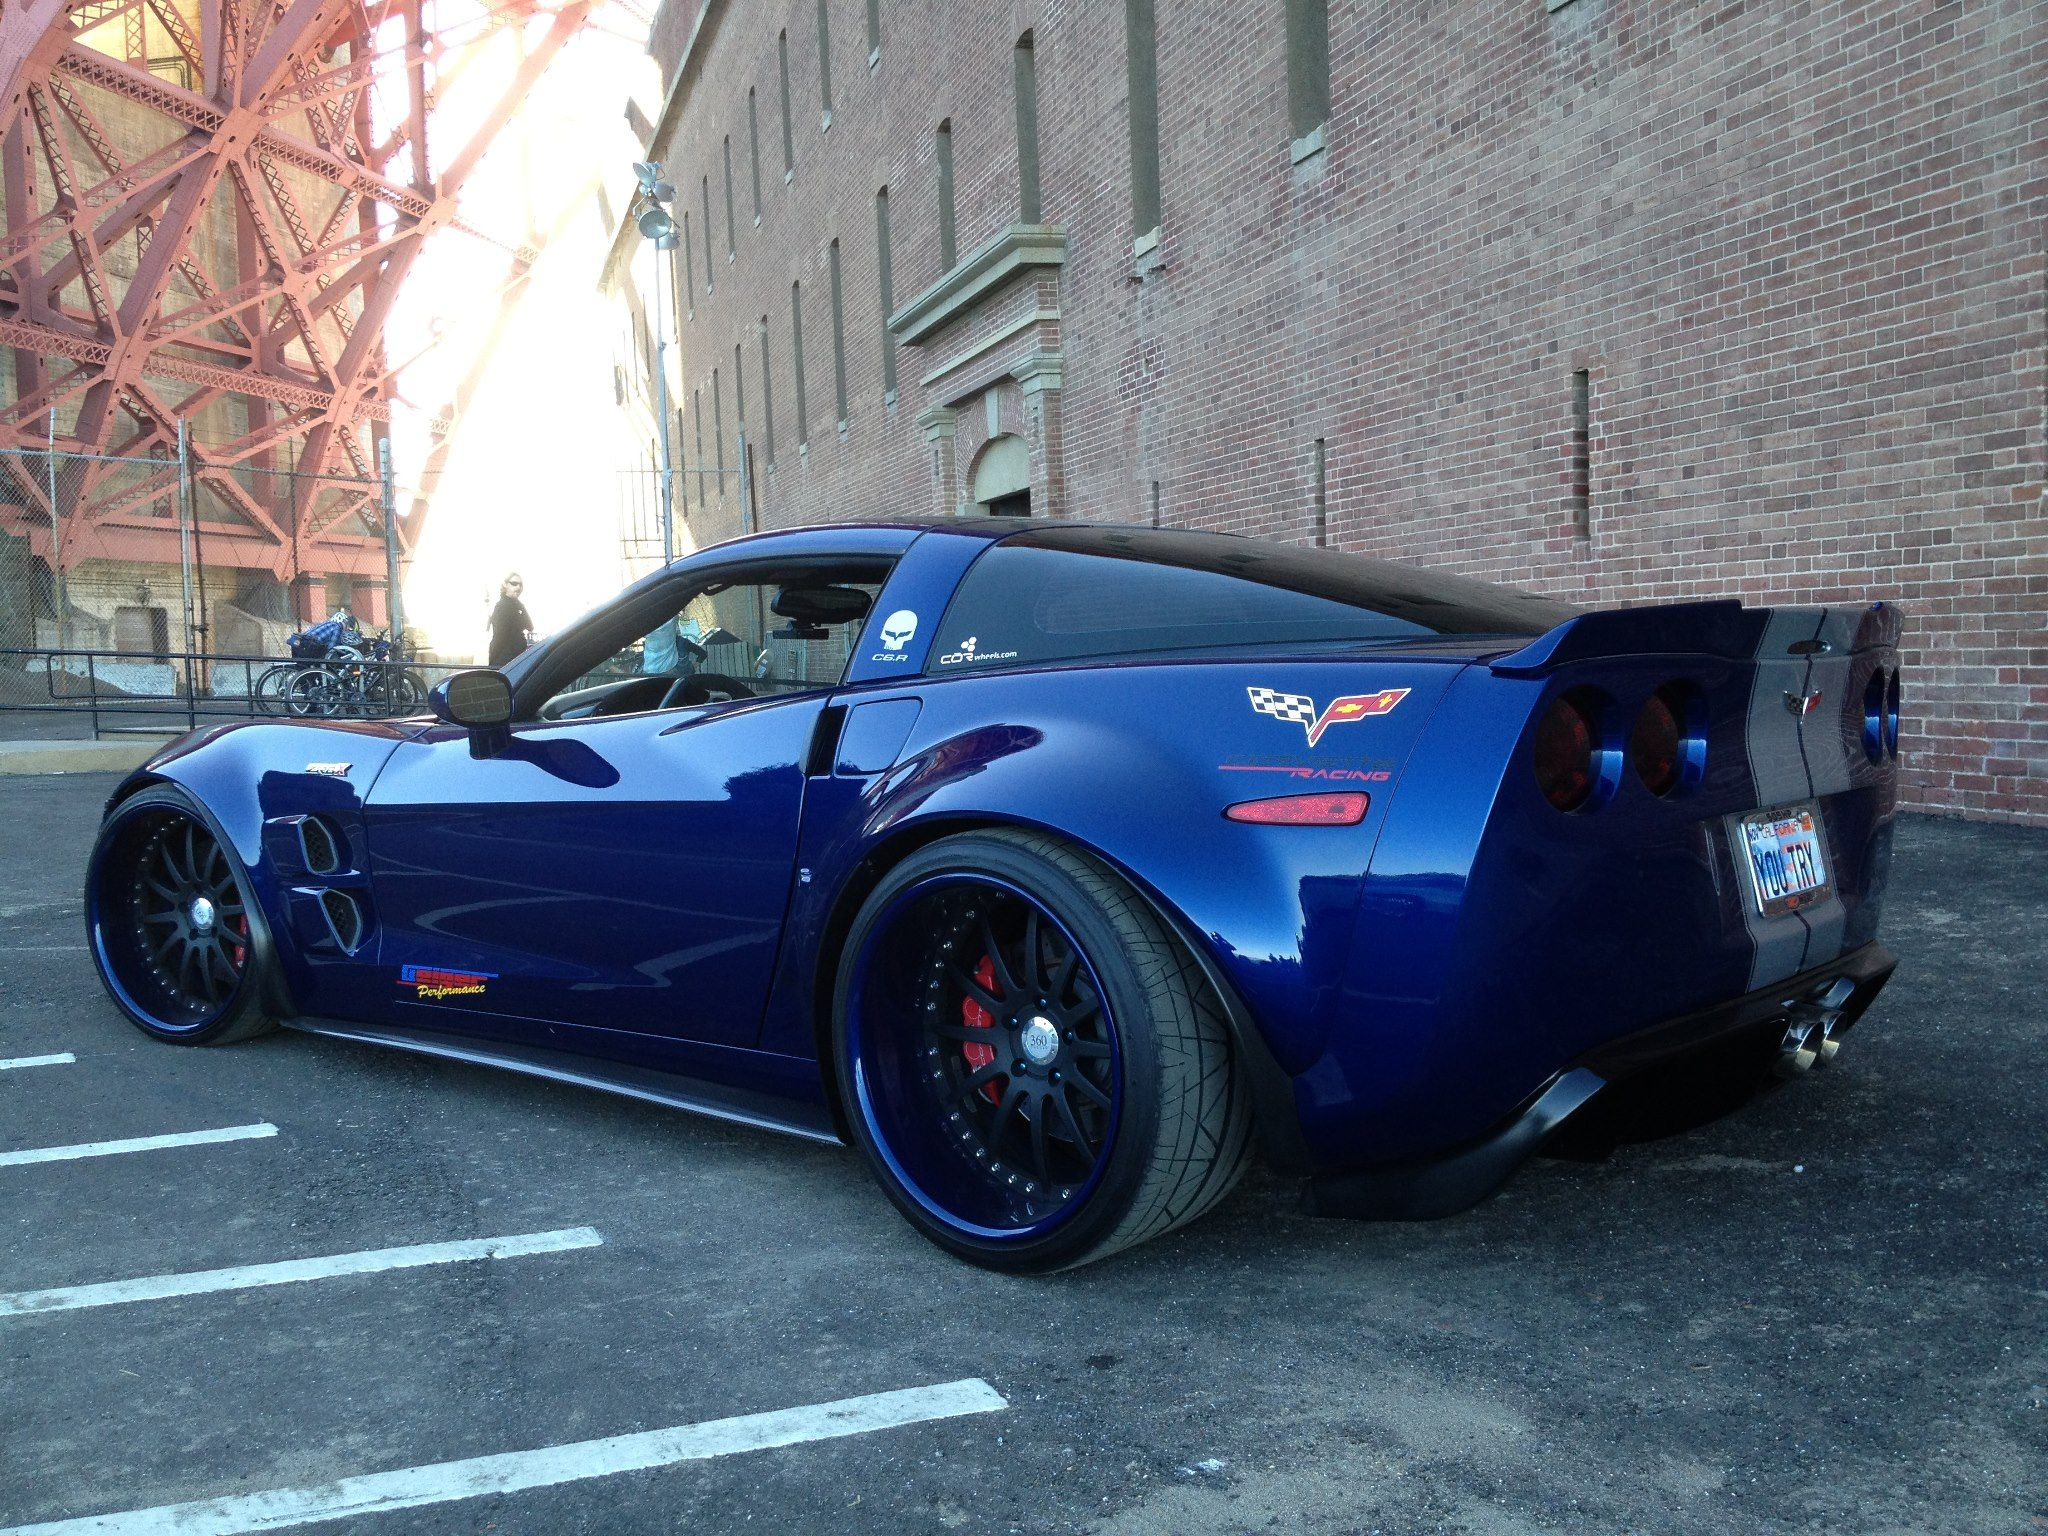 One Of A Kind Supervette Zr8x Corvette Forum With Images Car Chevrolet Corvette Chevrolet Corvette